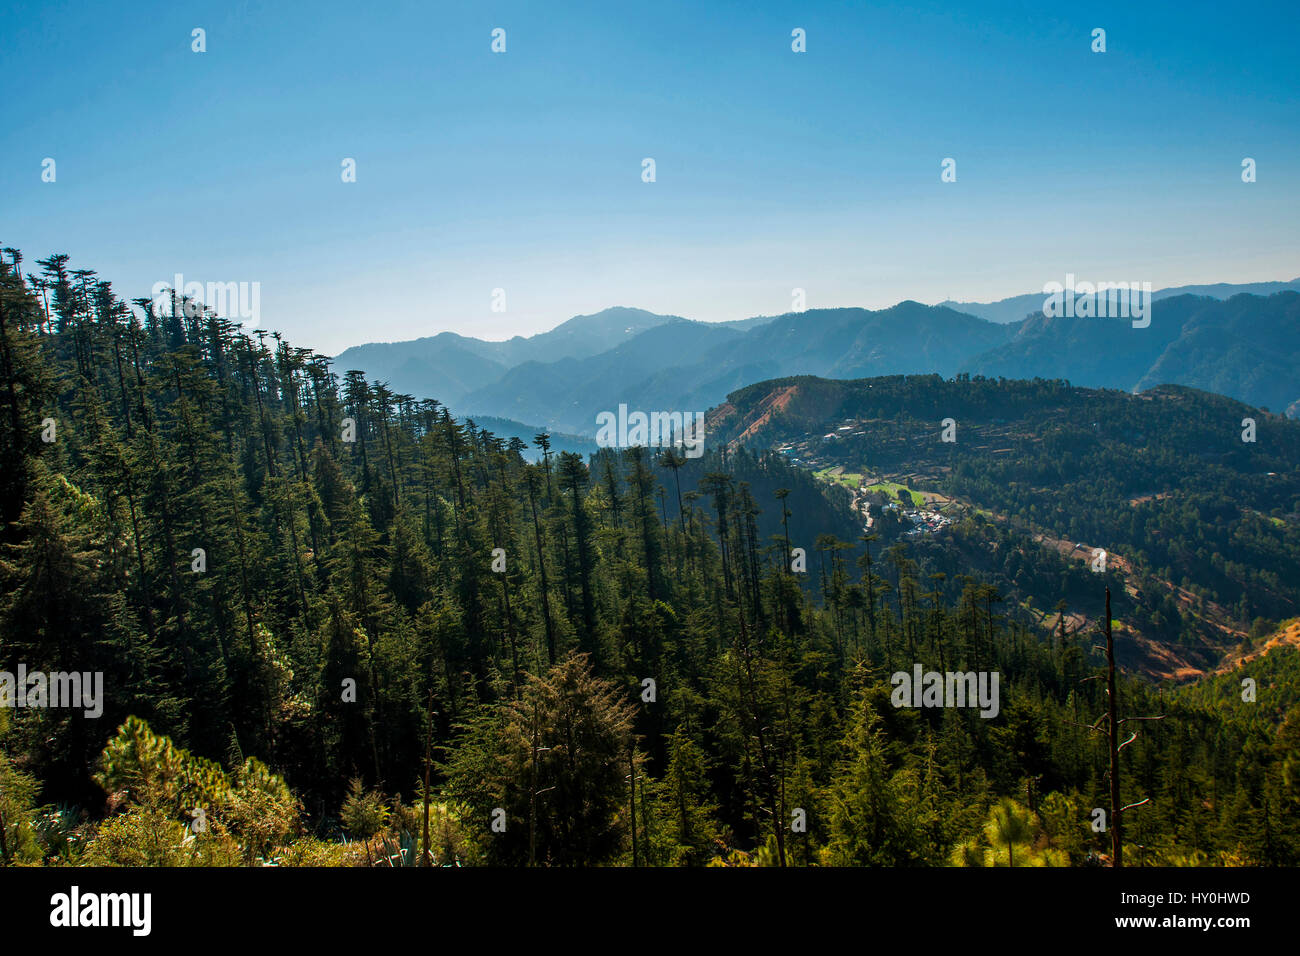 Indian Himalayan mountains, mashobra, himachal pradesh, india, asia - Stock Image